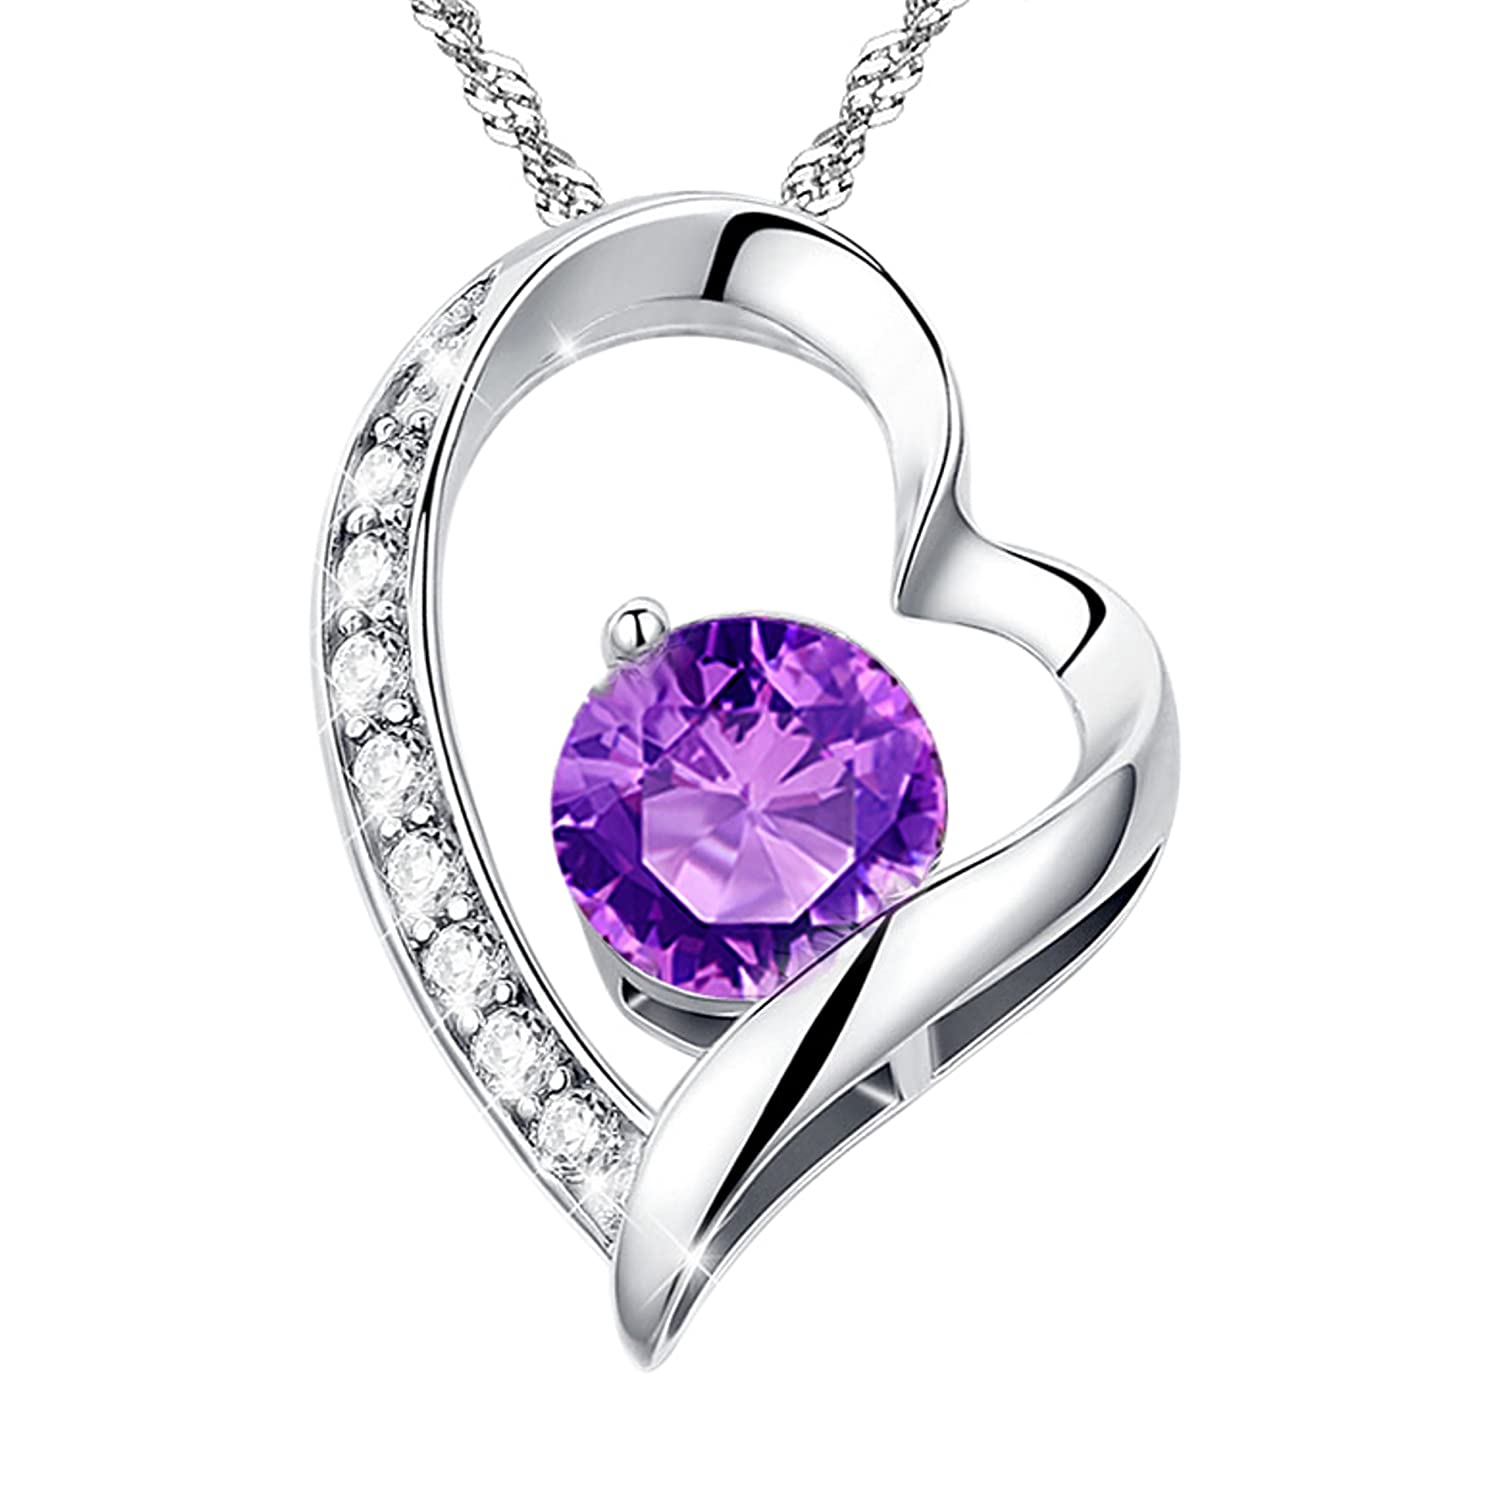 the purple pendant pendants necklaces diamond image rose jewellery is gold world quot yours from